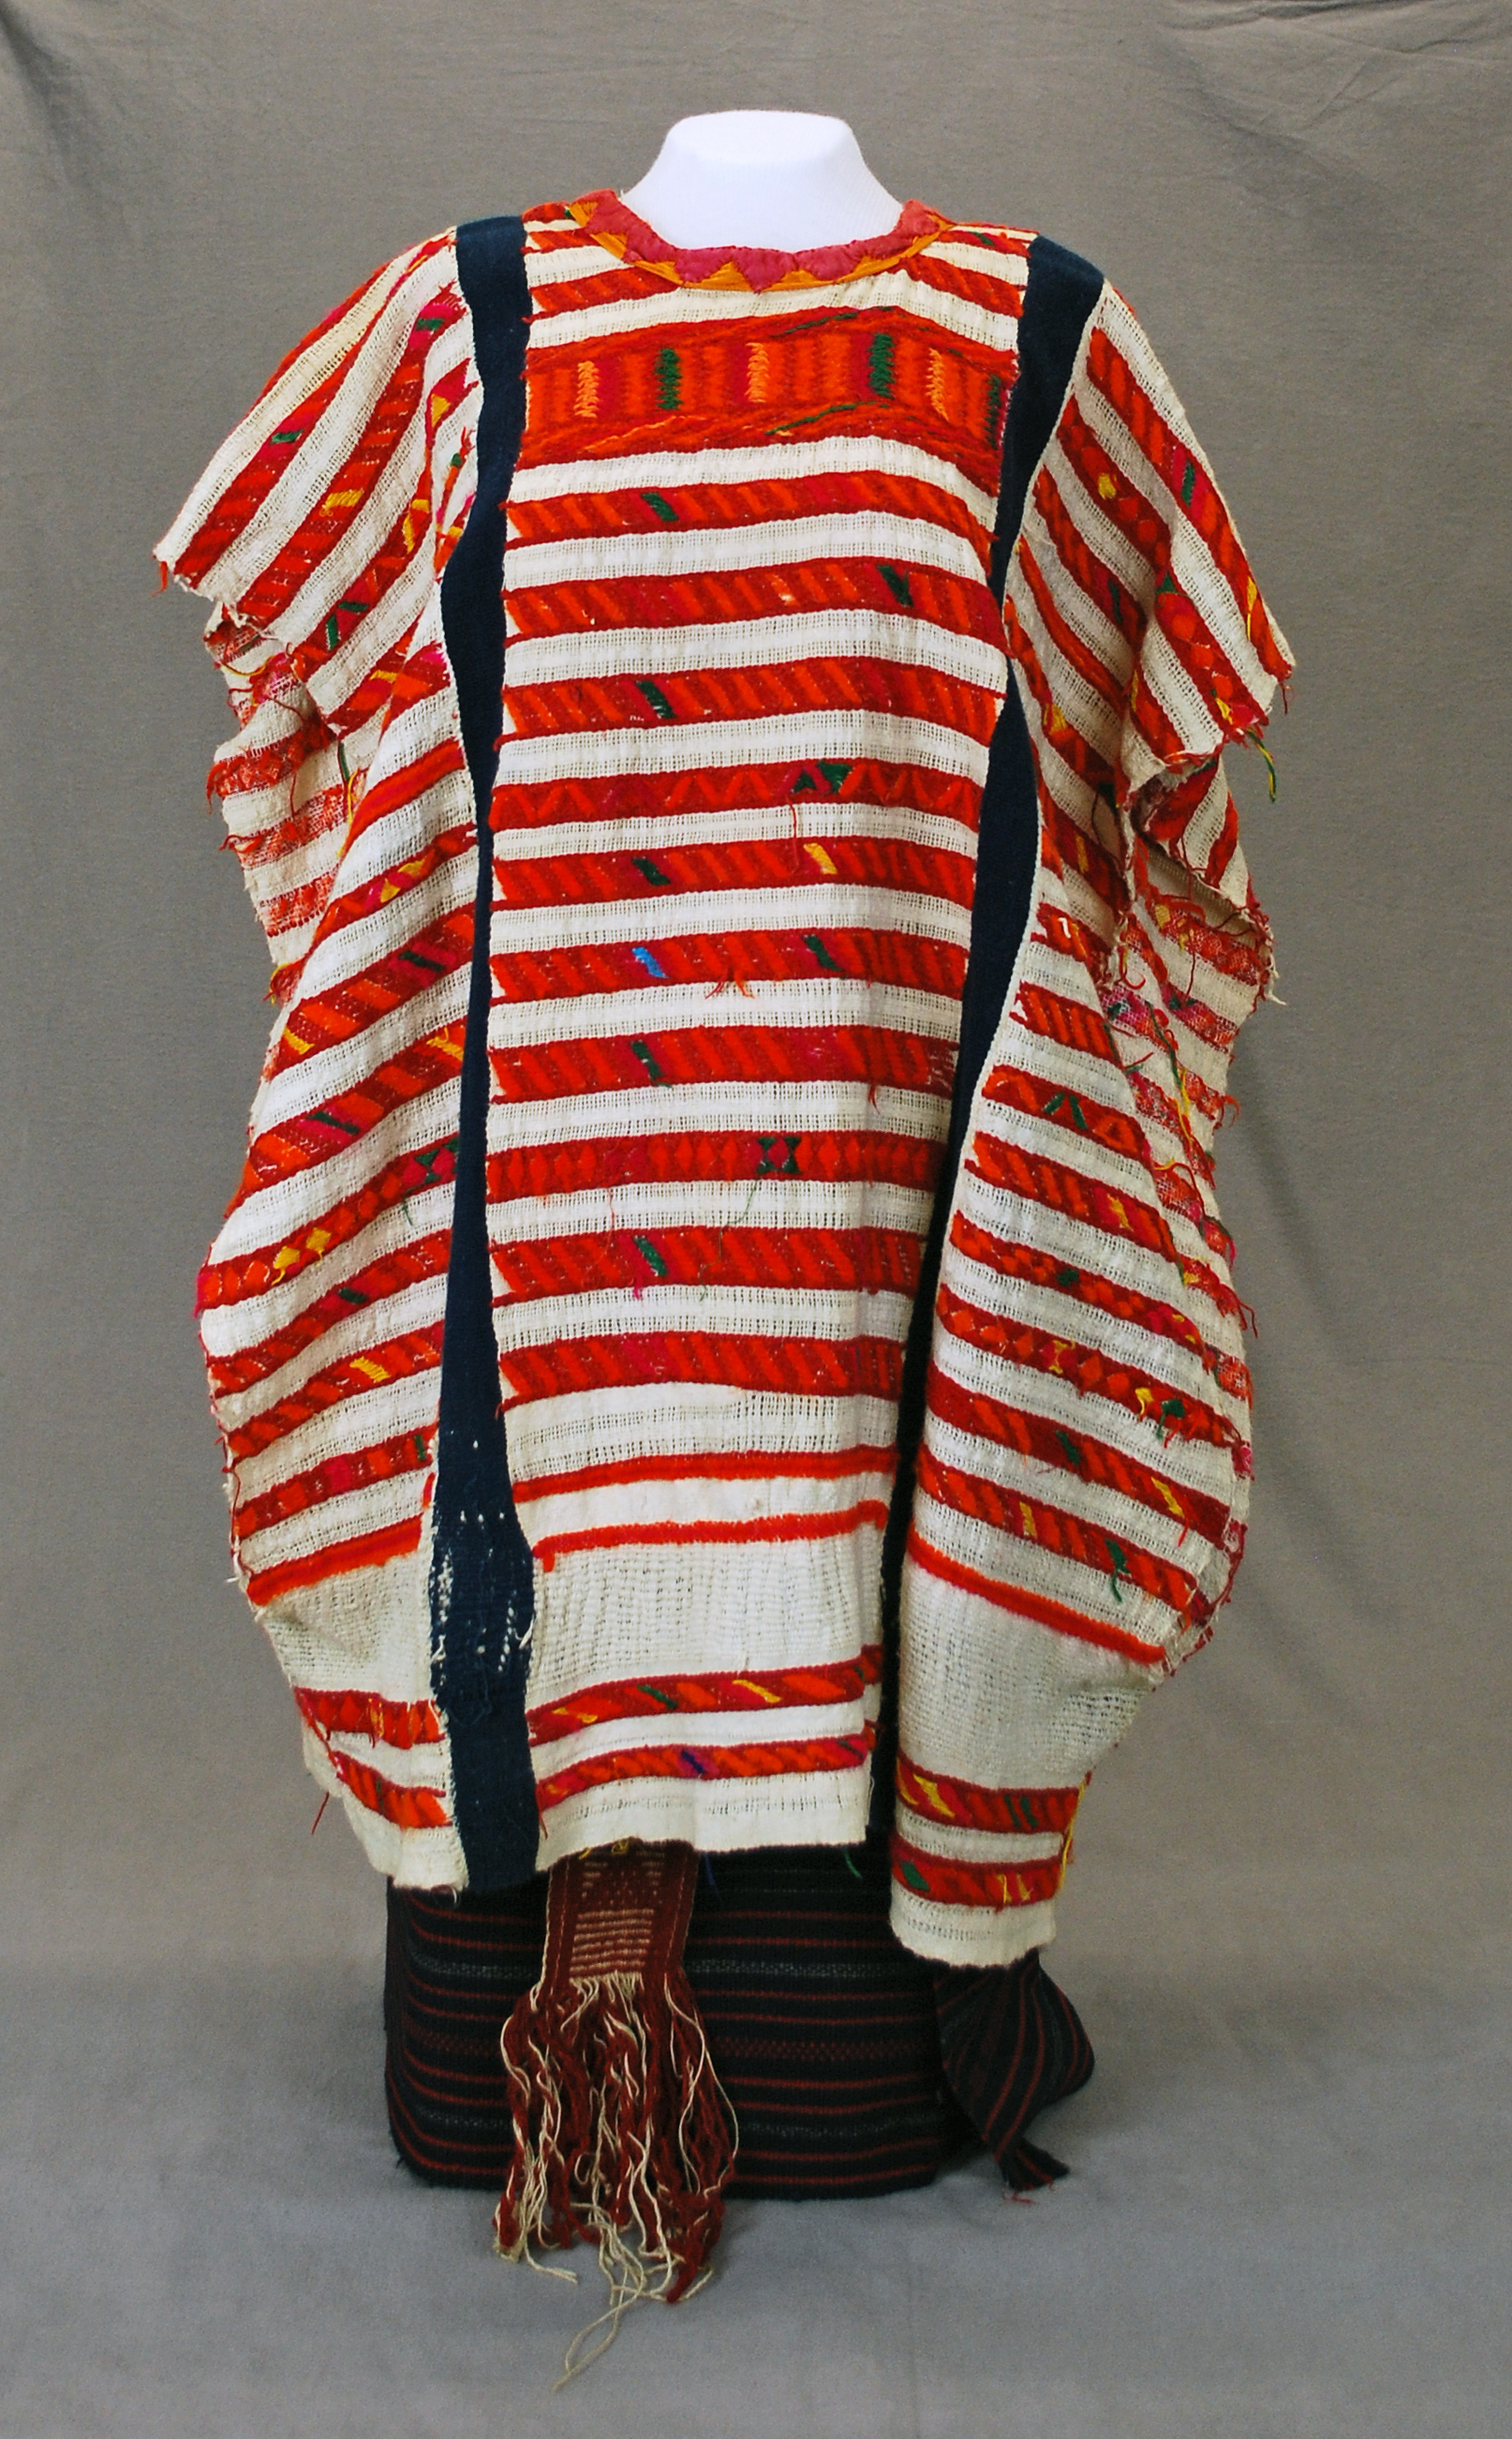 Object: Clothing (Trique tribe clothing) | UTSA Institute Of Texan Cultures